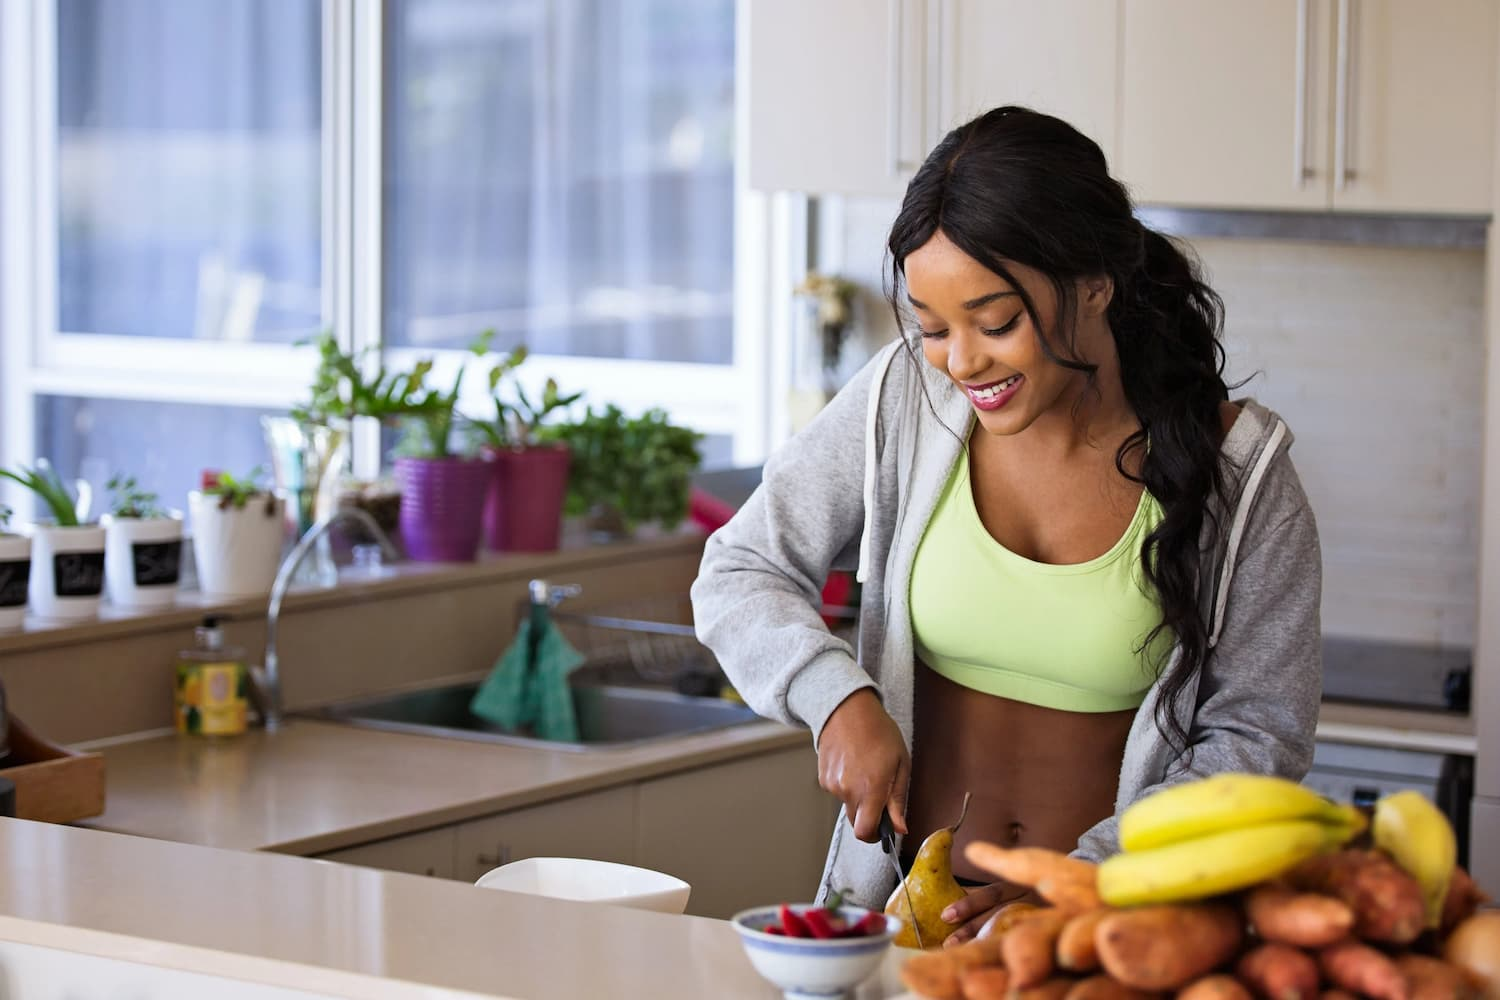 Healthy diet and regular exercise